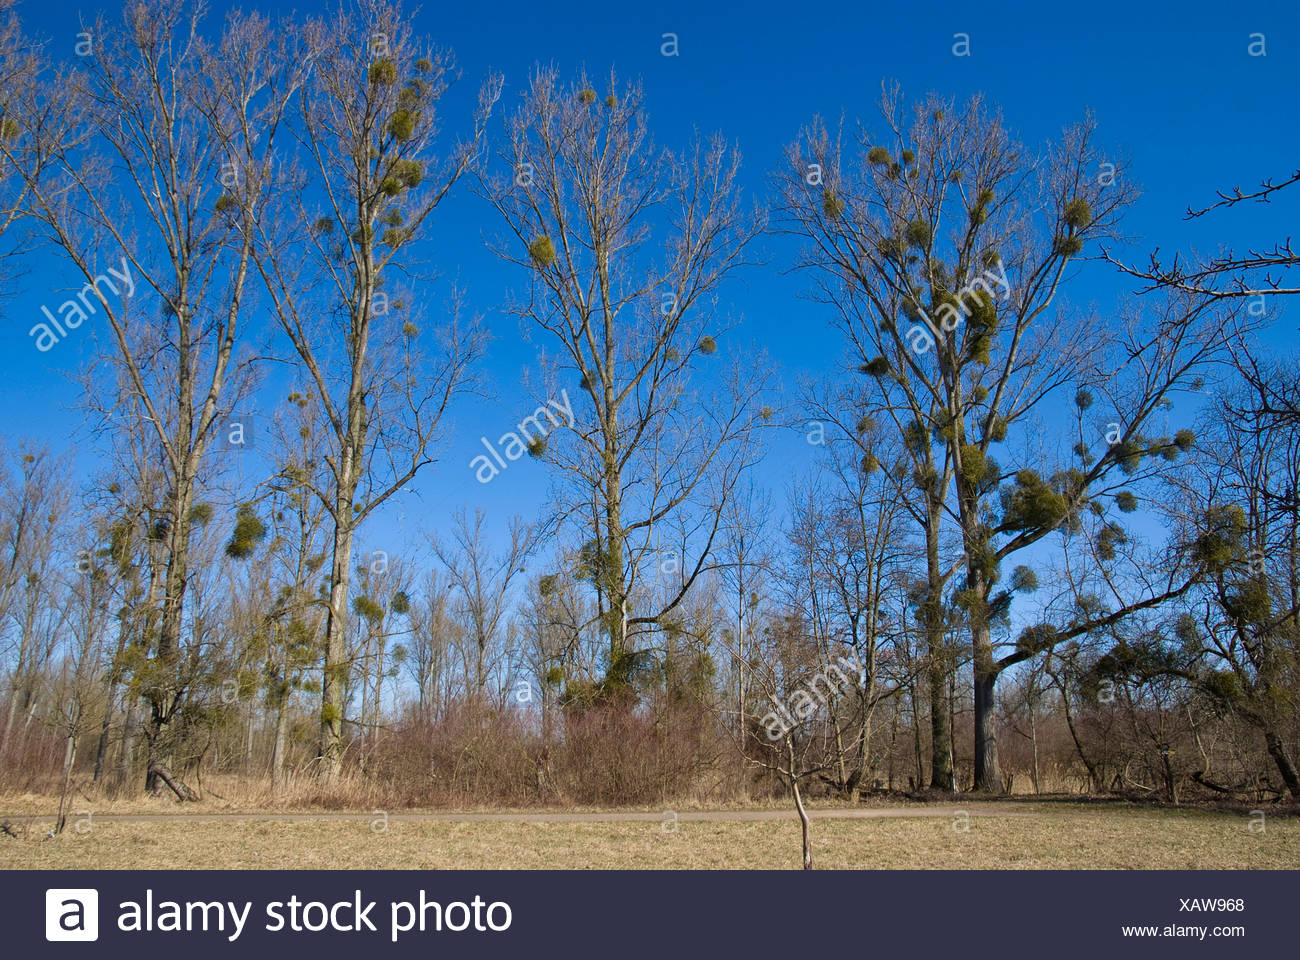 Canadian Poplar (Populus x canadensis), trees in winter with mistletoes, Visum album, Germany Stock Photo